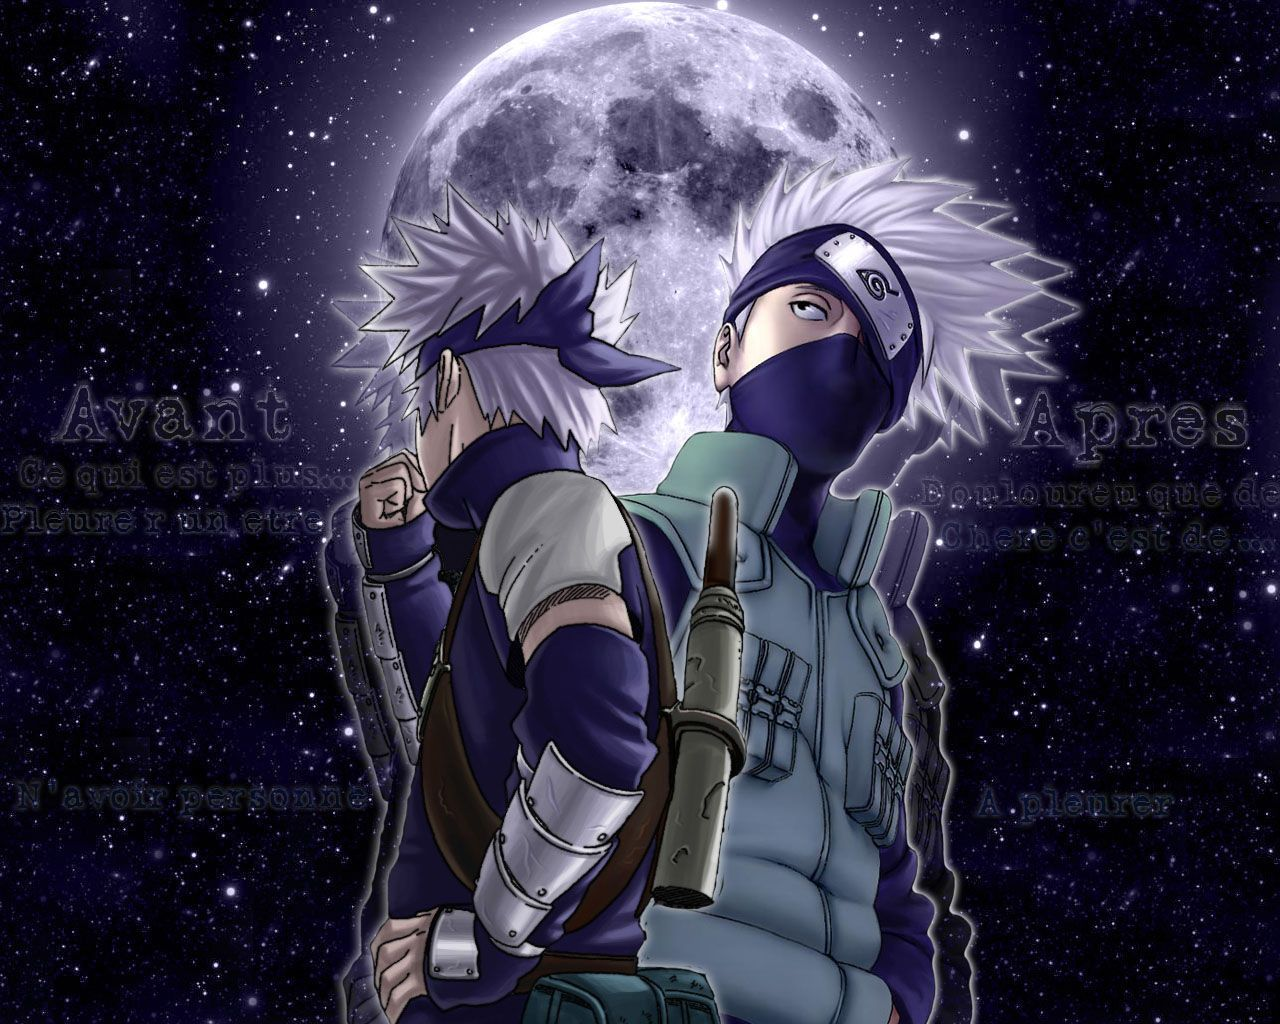 Cool Kakashi Hatake Picture Credit To The Artist Kakashi Hatake Naruto Supreme Kakashi